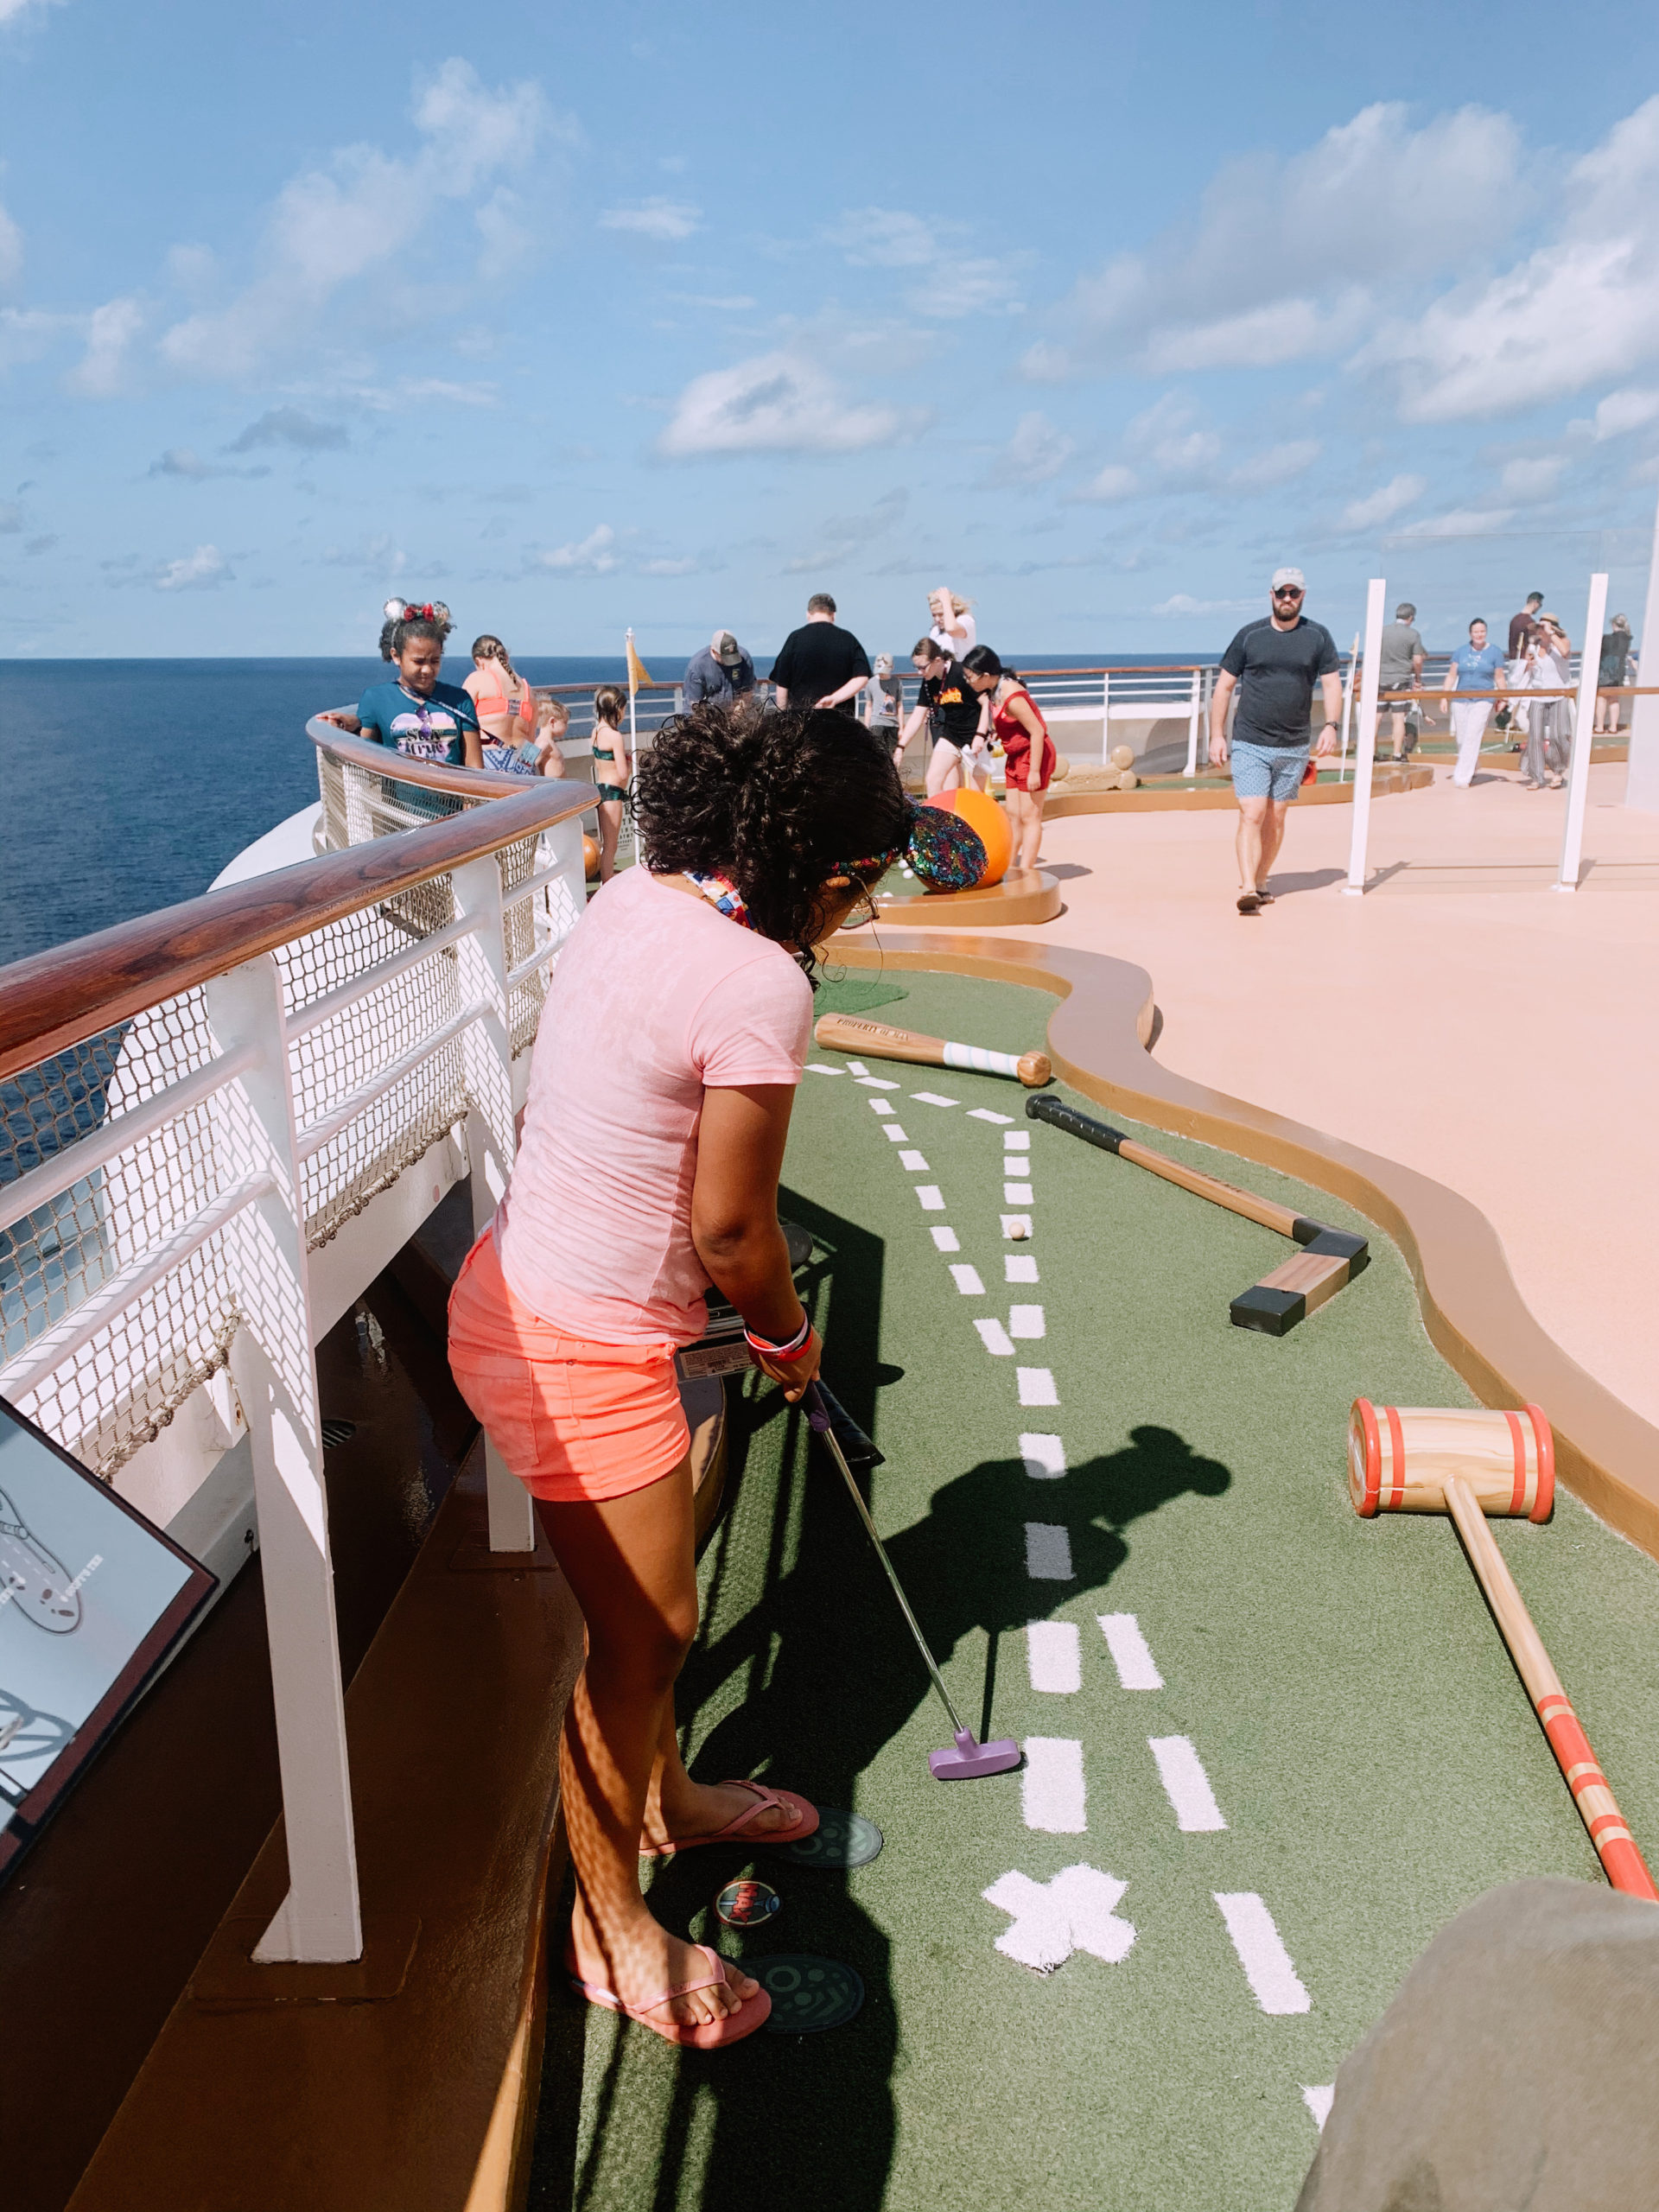 Ruthie Ridley Blog: Disney Cruise Line: Fantasy Ship- Star Wars Day At The Sea